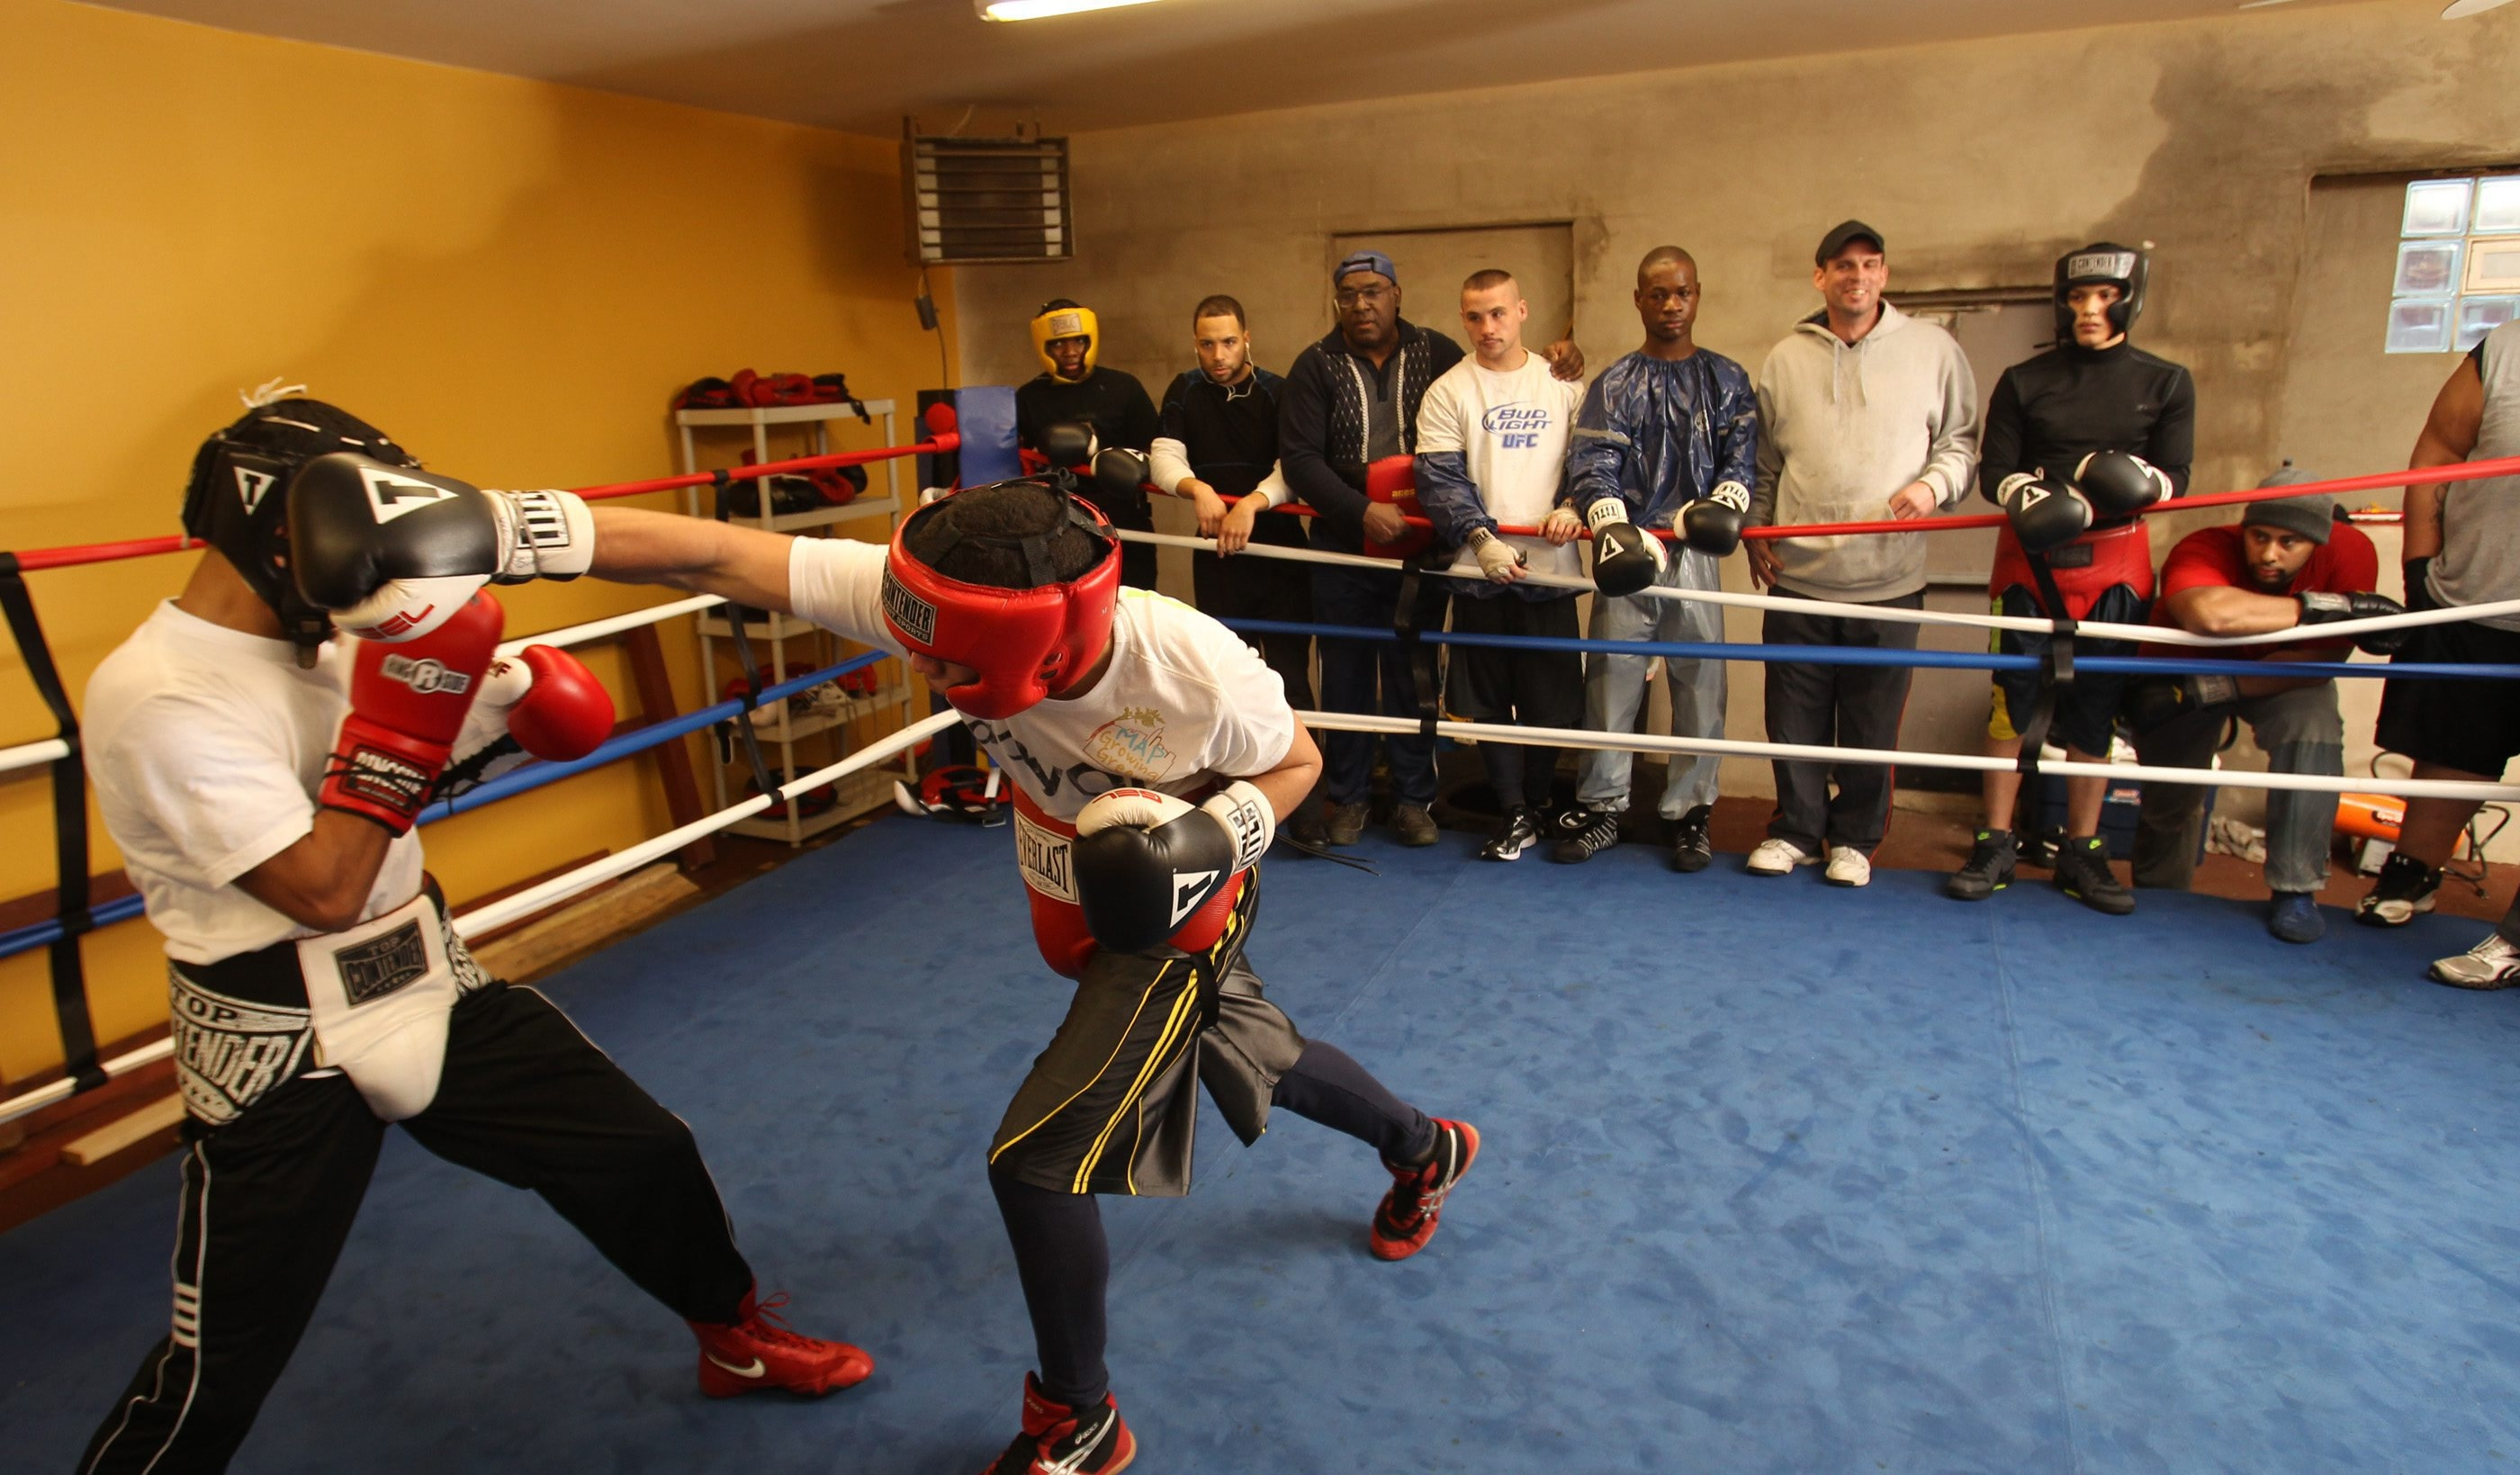 West Side Boxing Club is sanctuary for youth – The Buffalo News